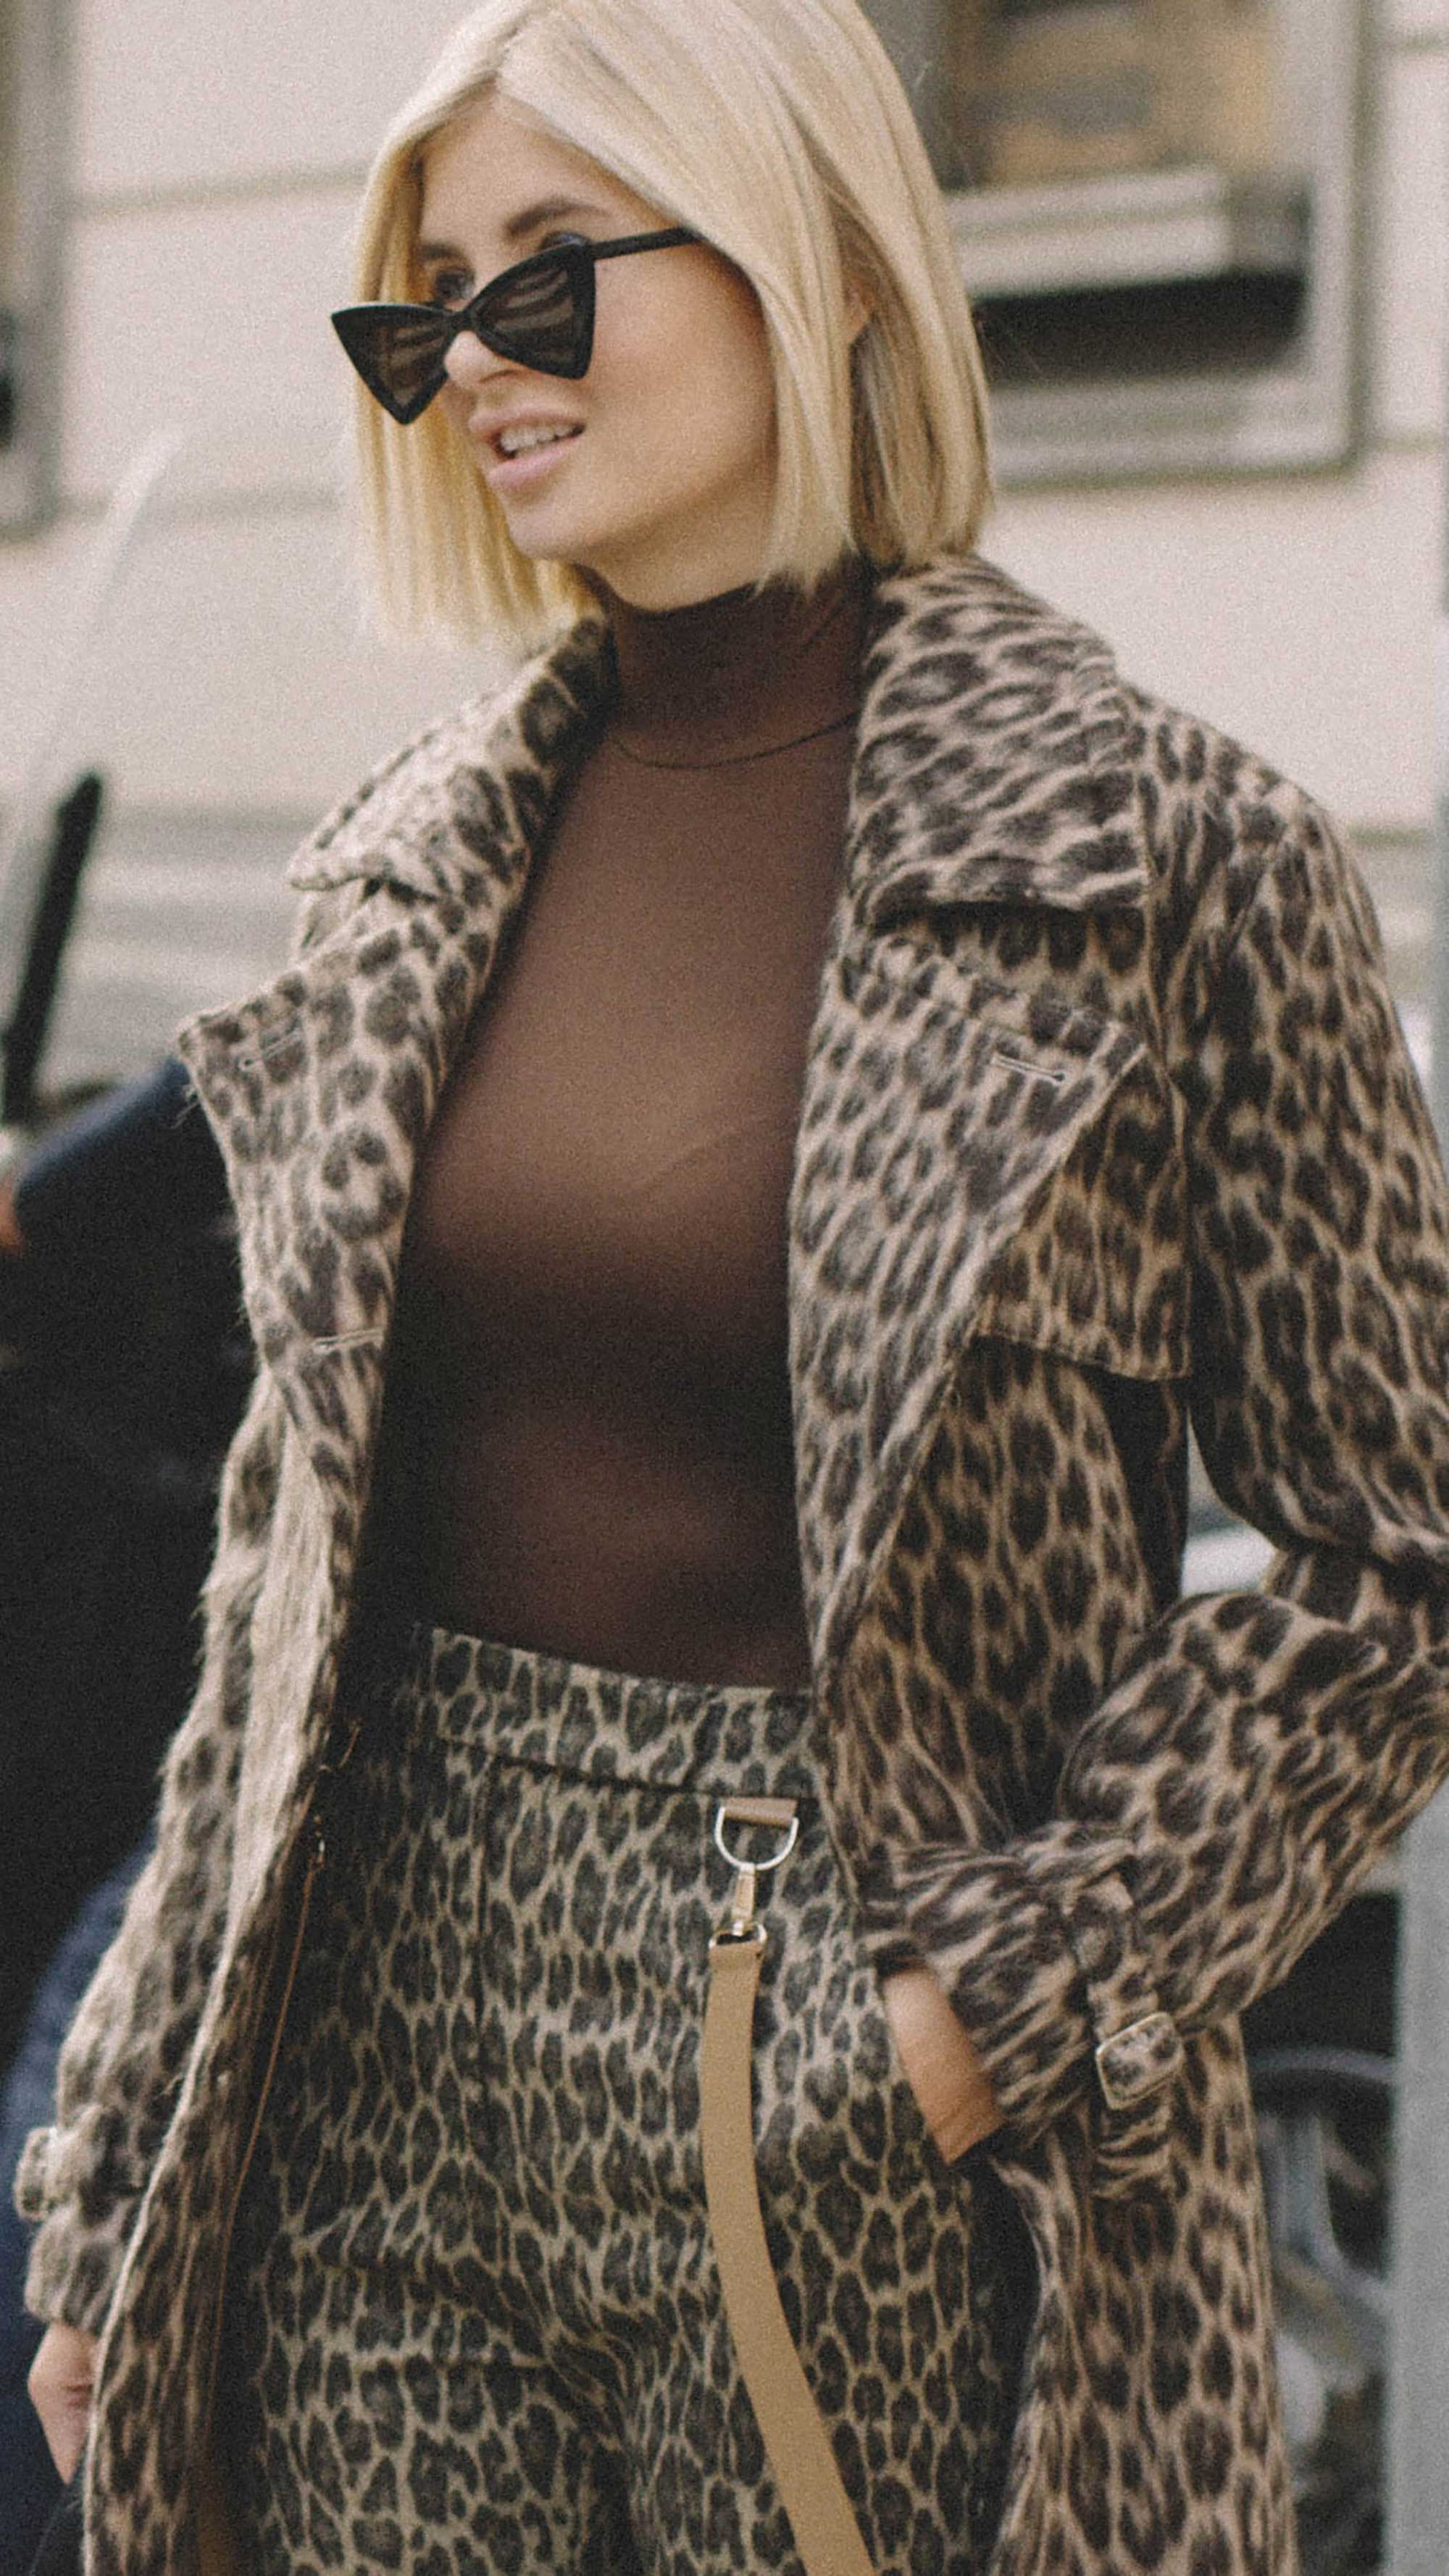 10 Easy Ways to Pull Off Animal Print, leopard suit, Xenia Overdose Street Style Milan.jpg